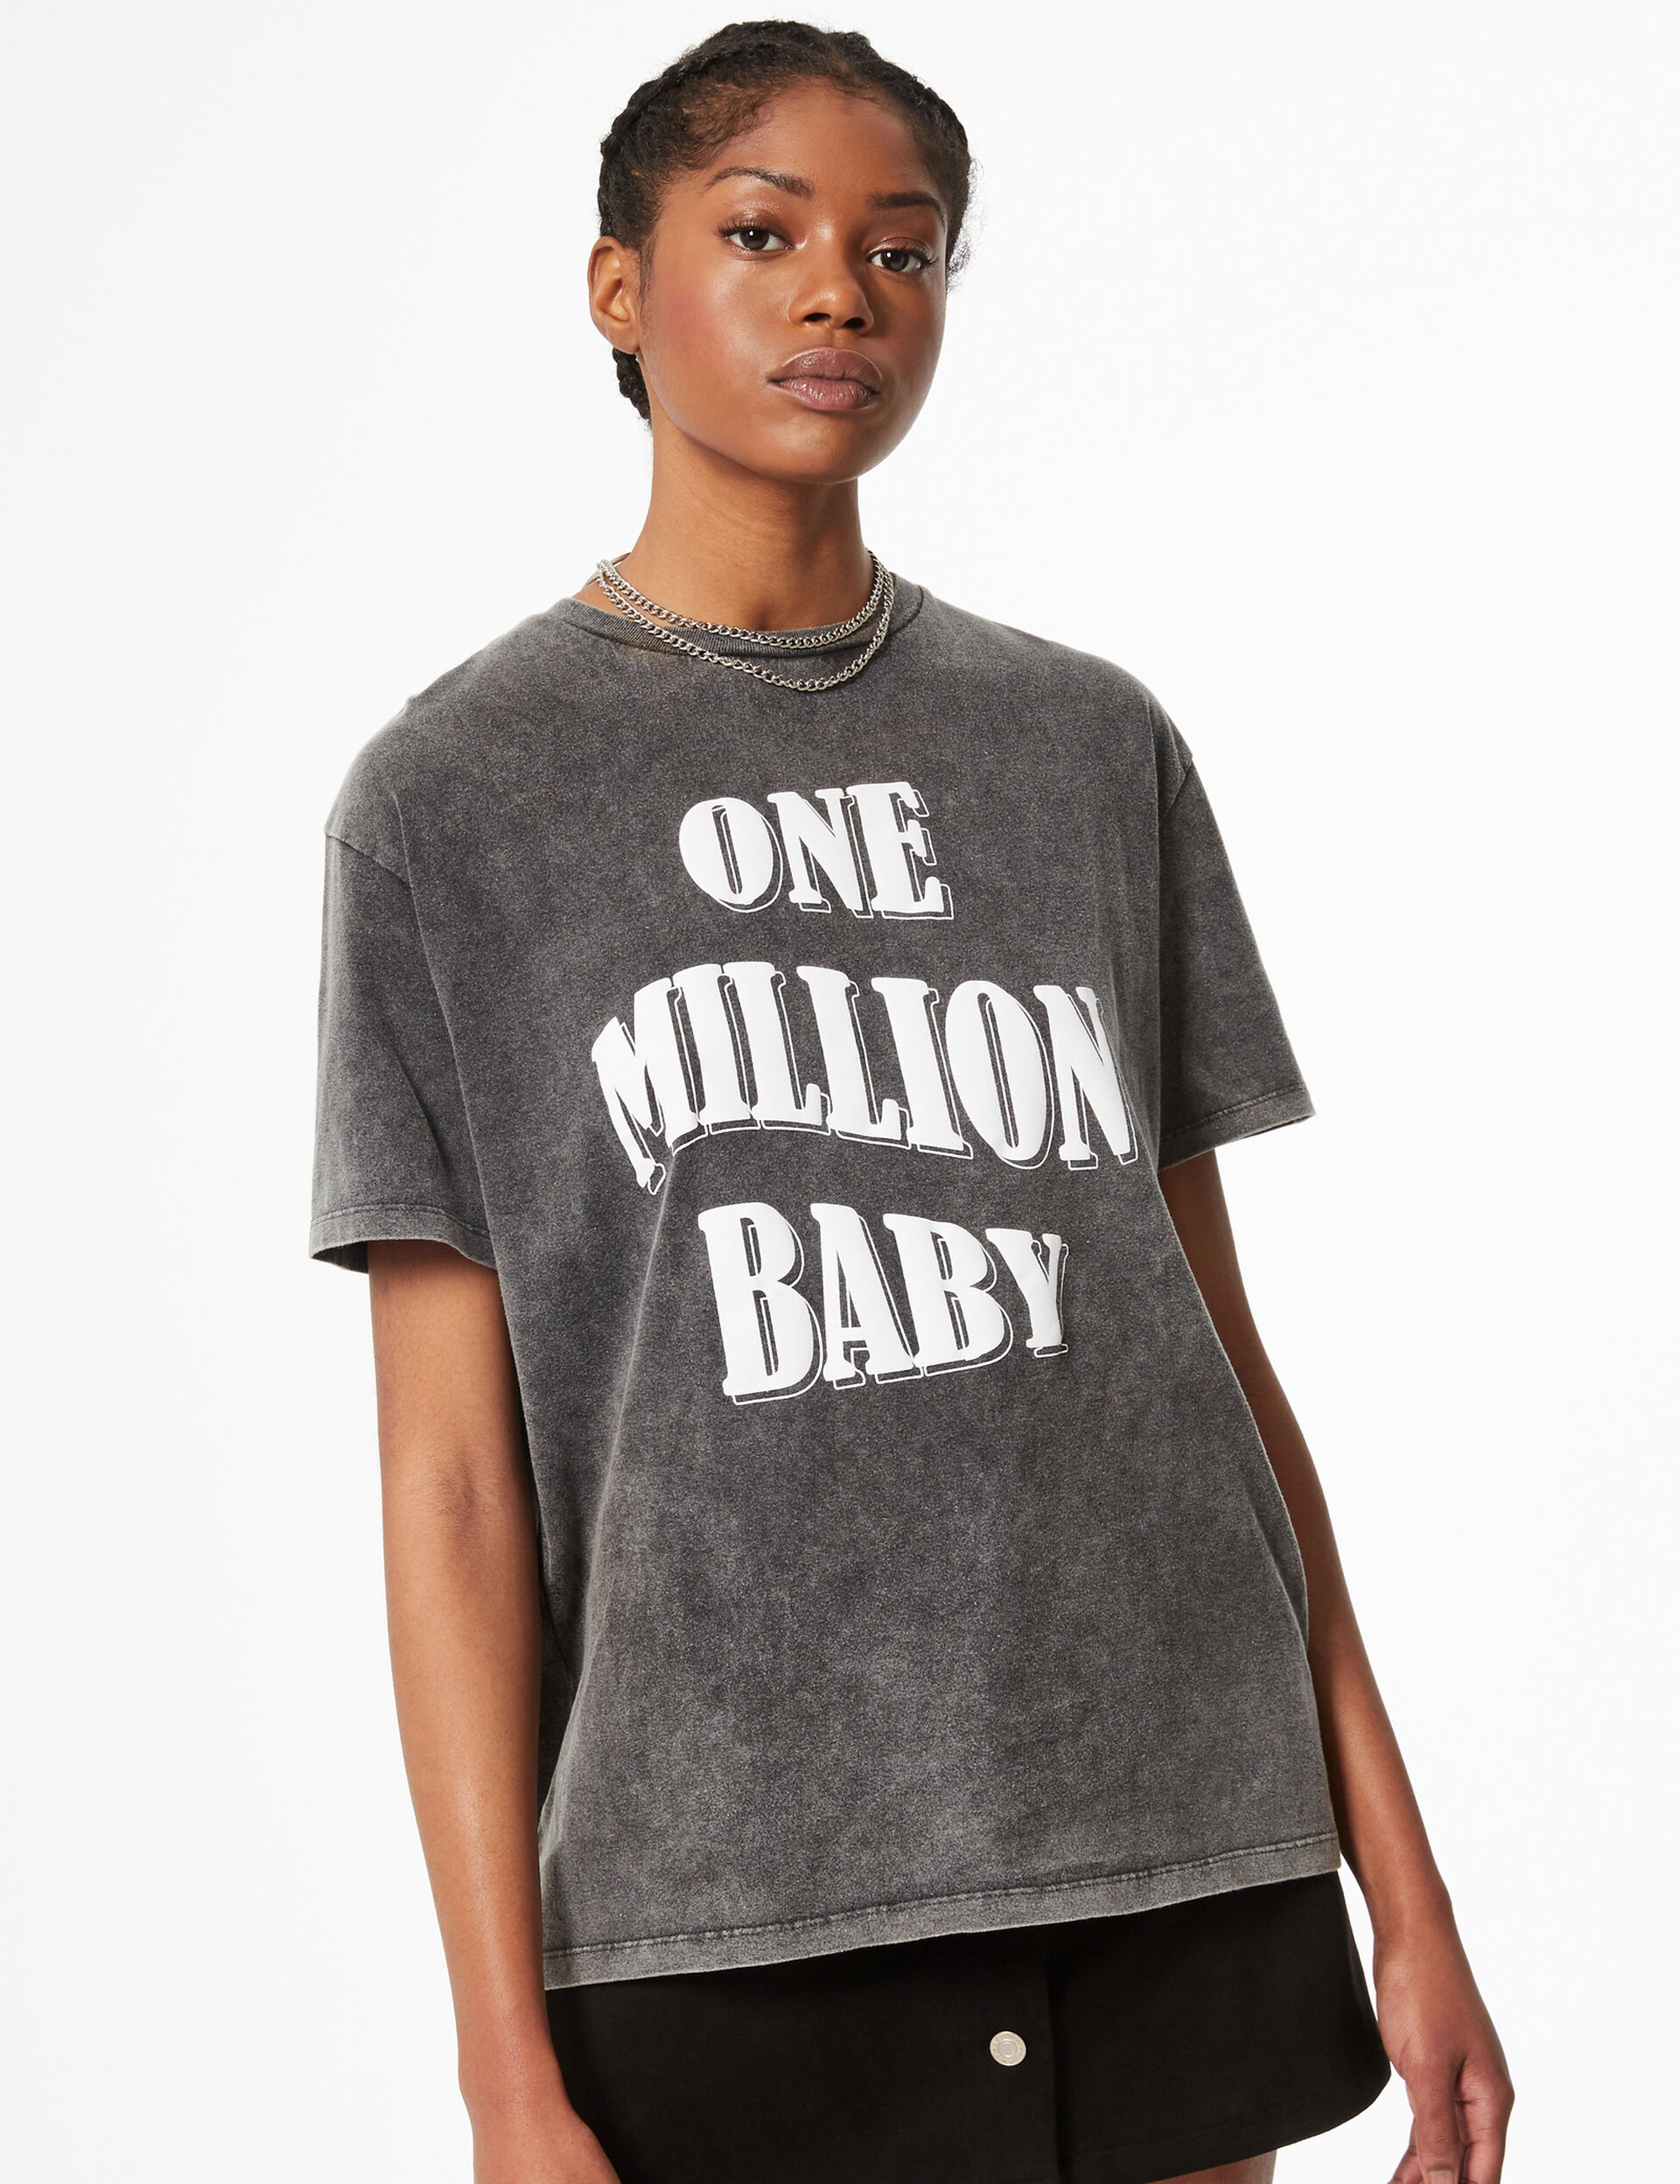 'one million baby' t-shirt